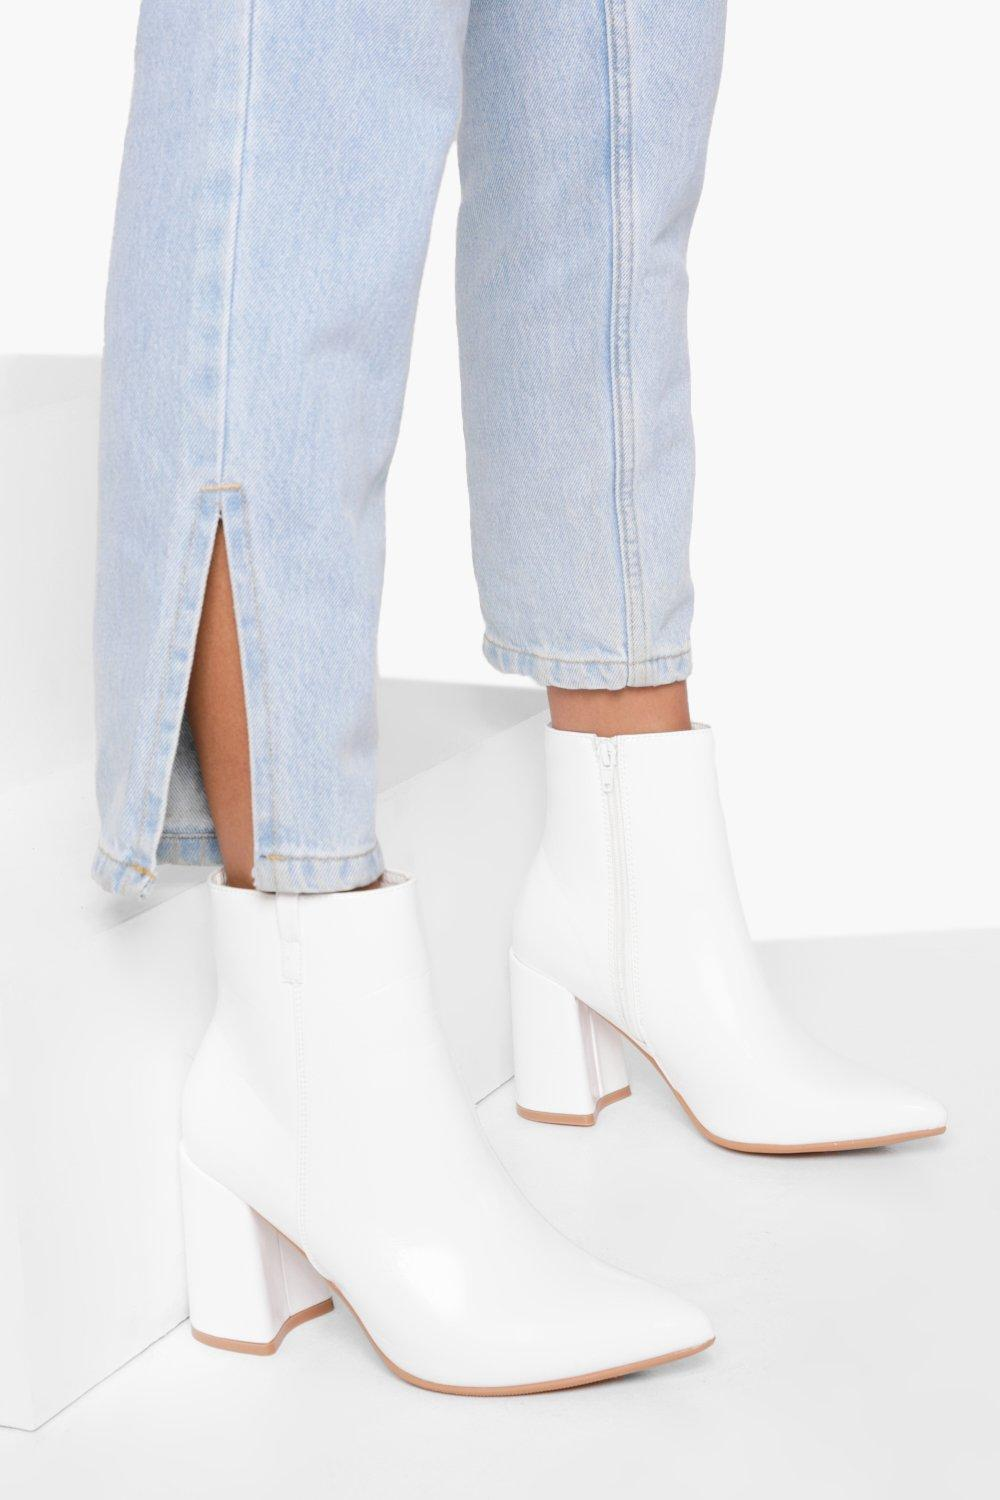 70s Shoes, Platforms, Boots, Heels | 1970s Shoes Womens Pointed Block Heel Sock Boots - White - 8 $25.60 AT vintagedancer.com